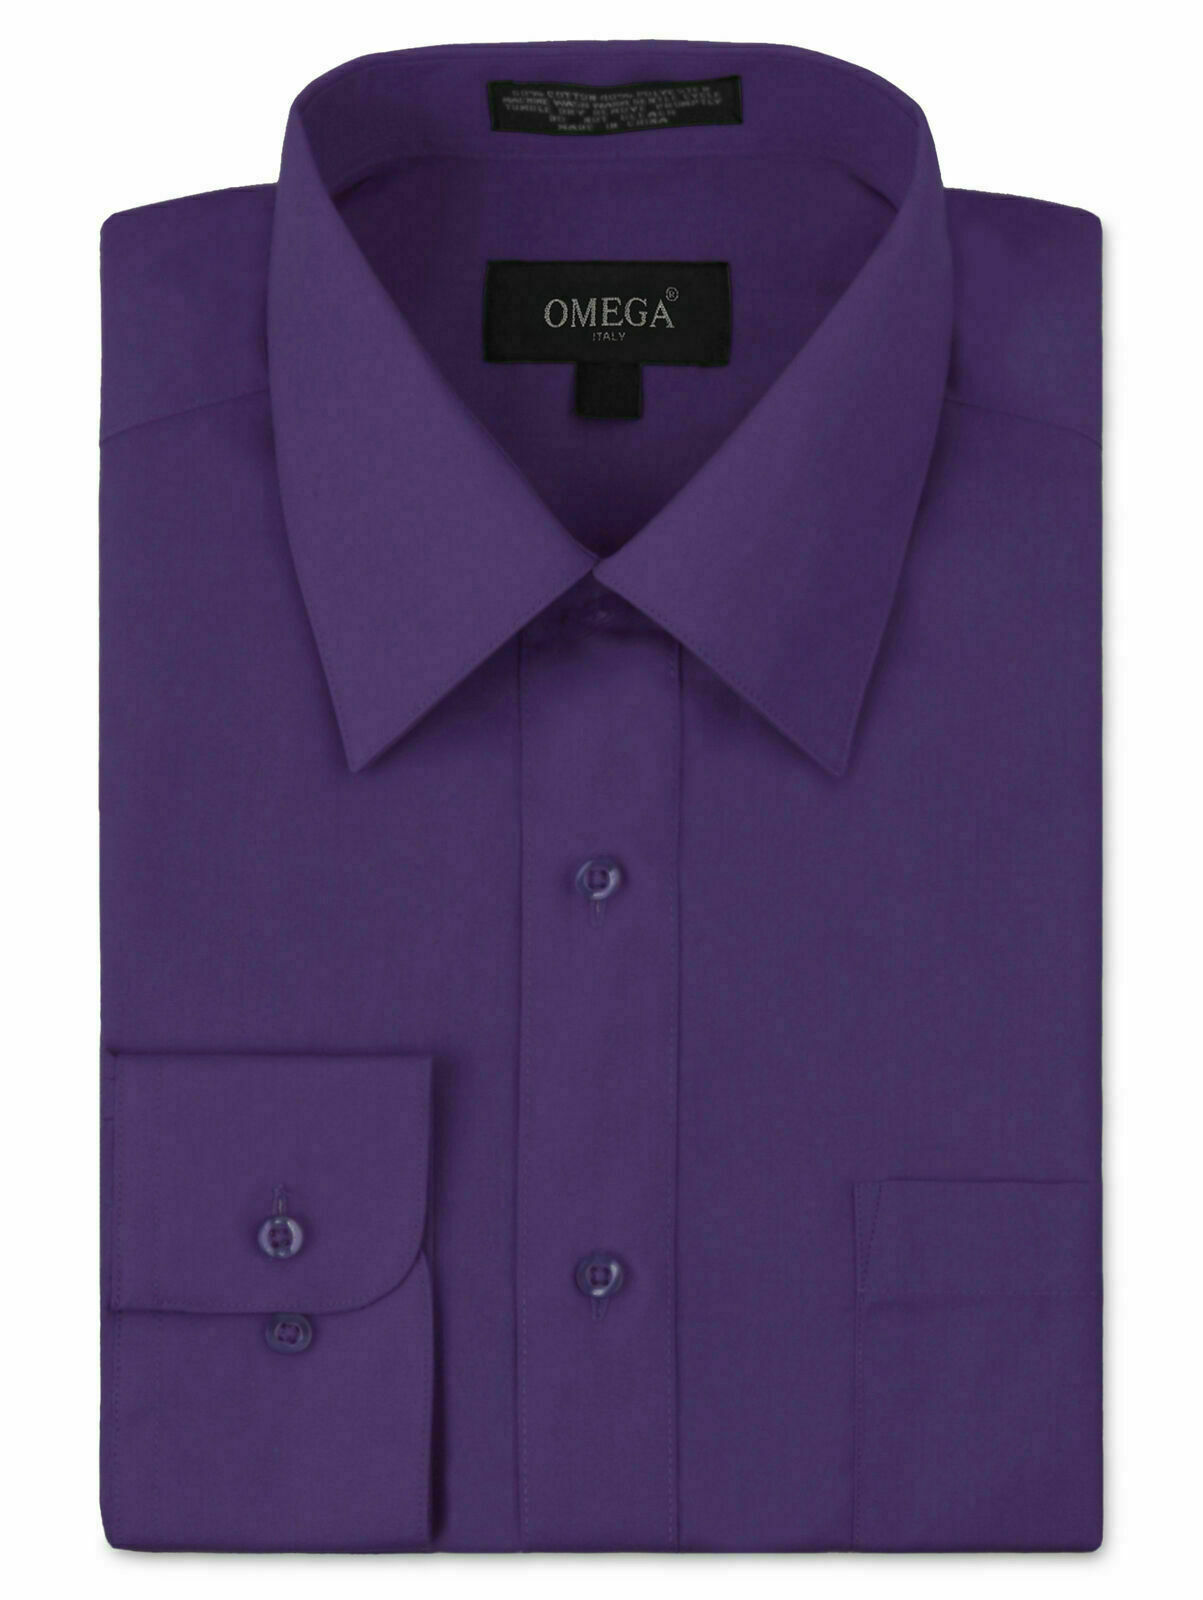 Omega Italy Men's Long Sleeve Solid Regular Fit Purple Dress Shirt - XL